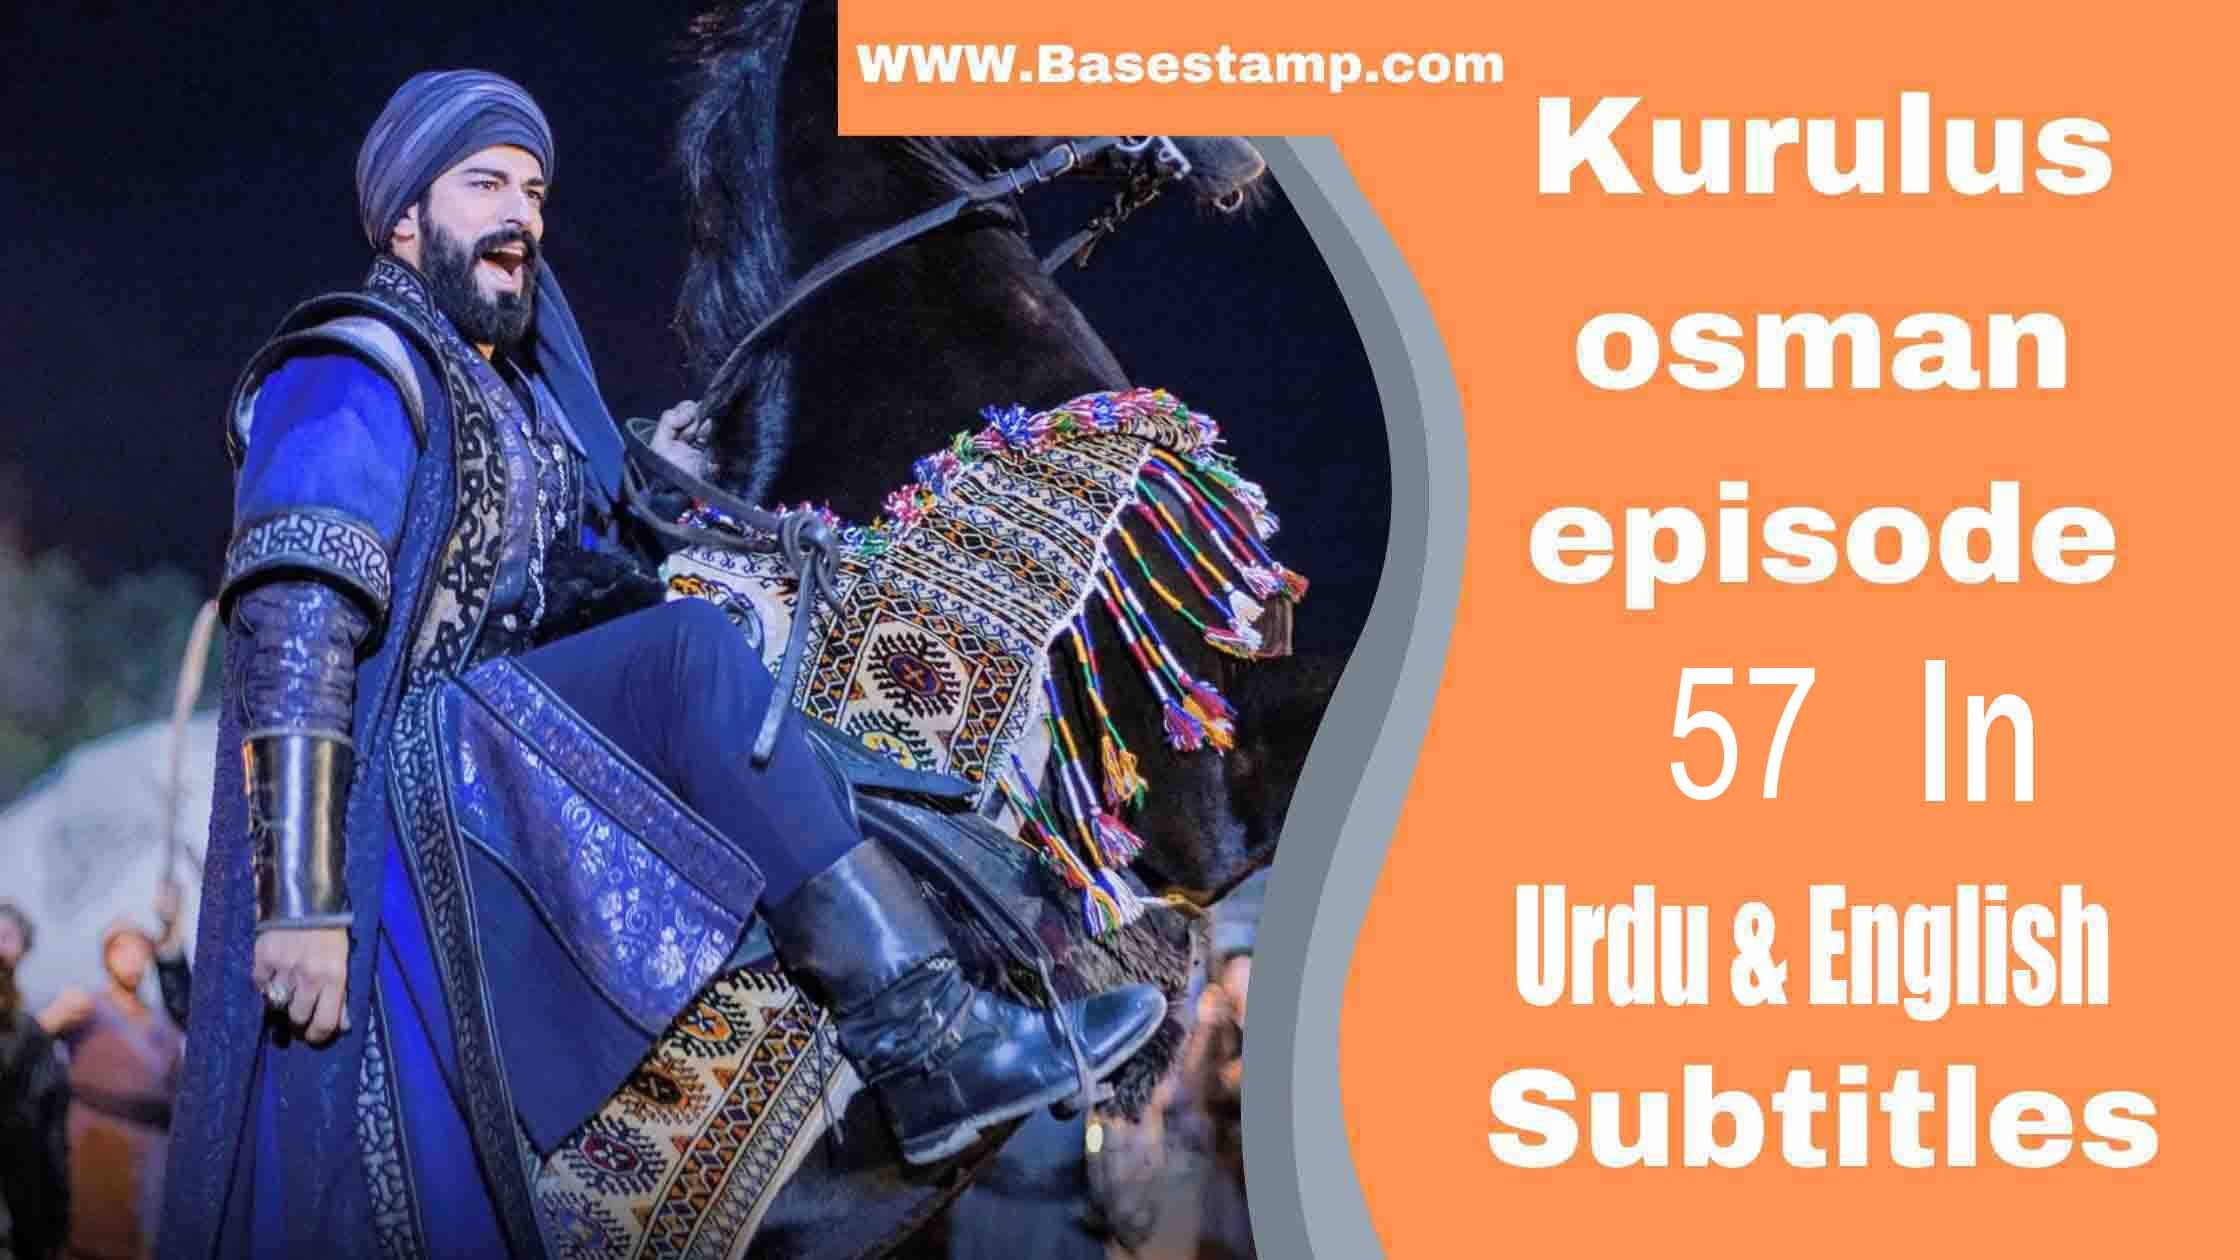 ▷❤️Kurulus Osman Season 2 Episode 57 In Urdu & English Subtitles